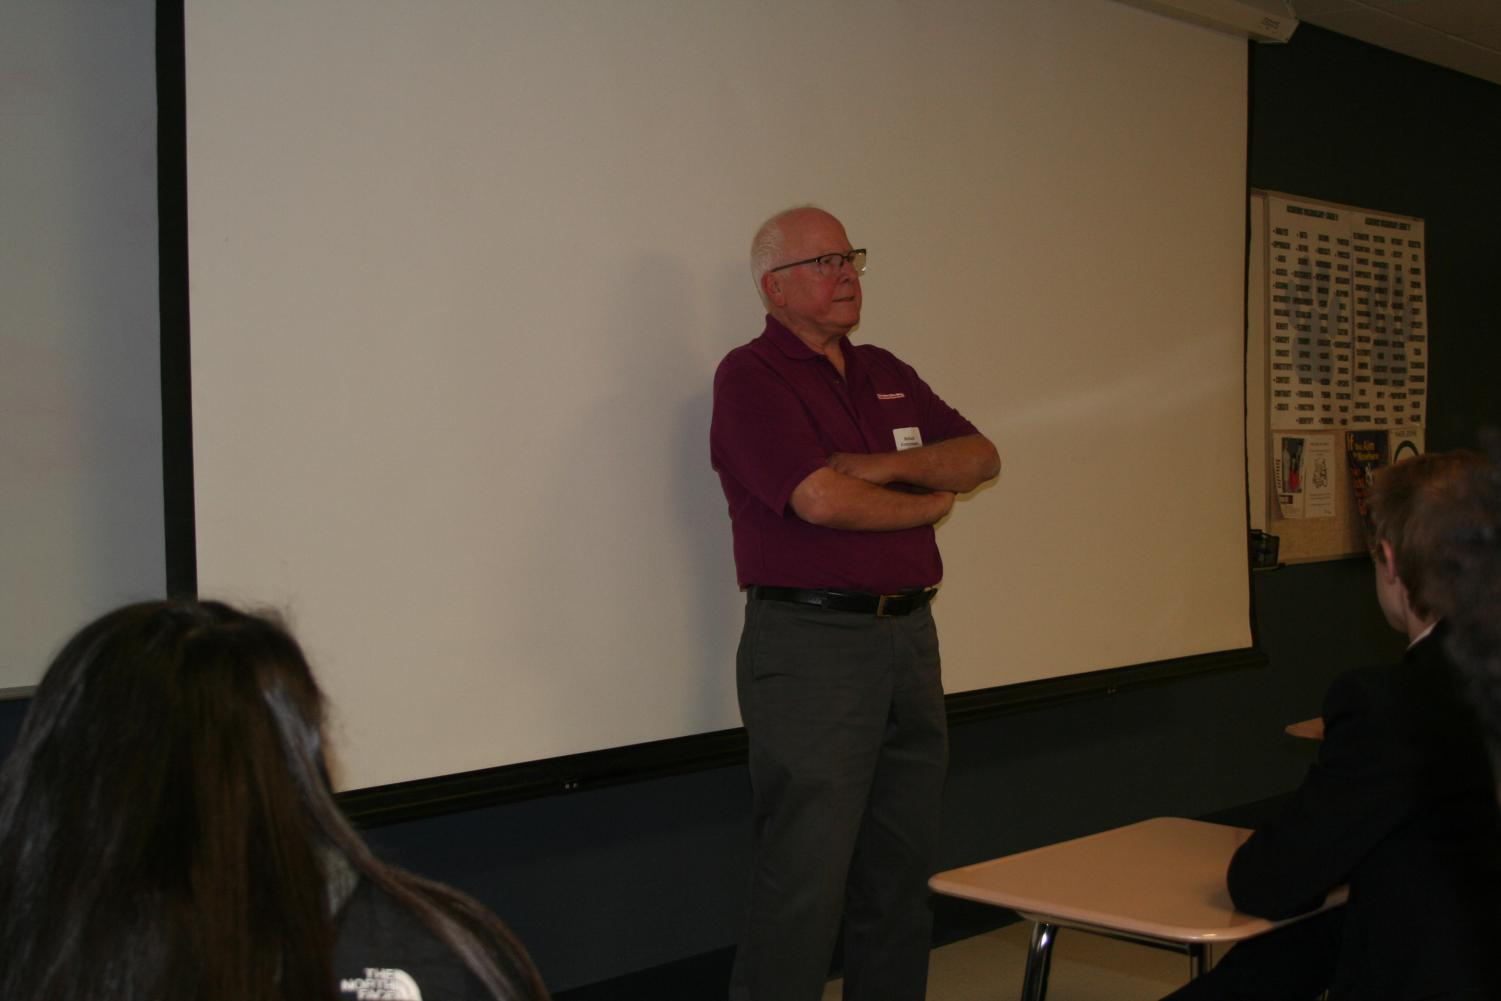 Veteran Richard Korzyniewski speaks to students during the RBHS Veteran's Day classroom visits.